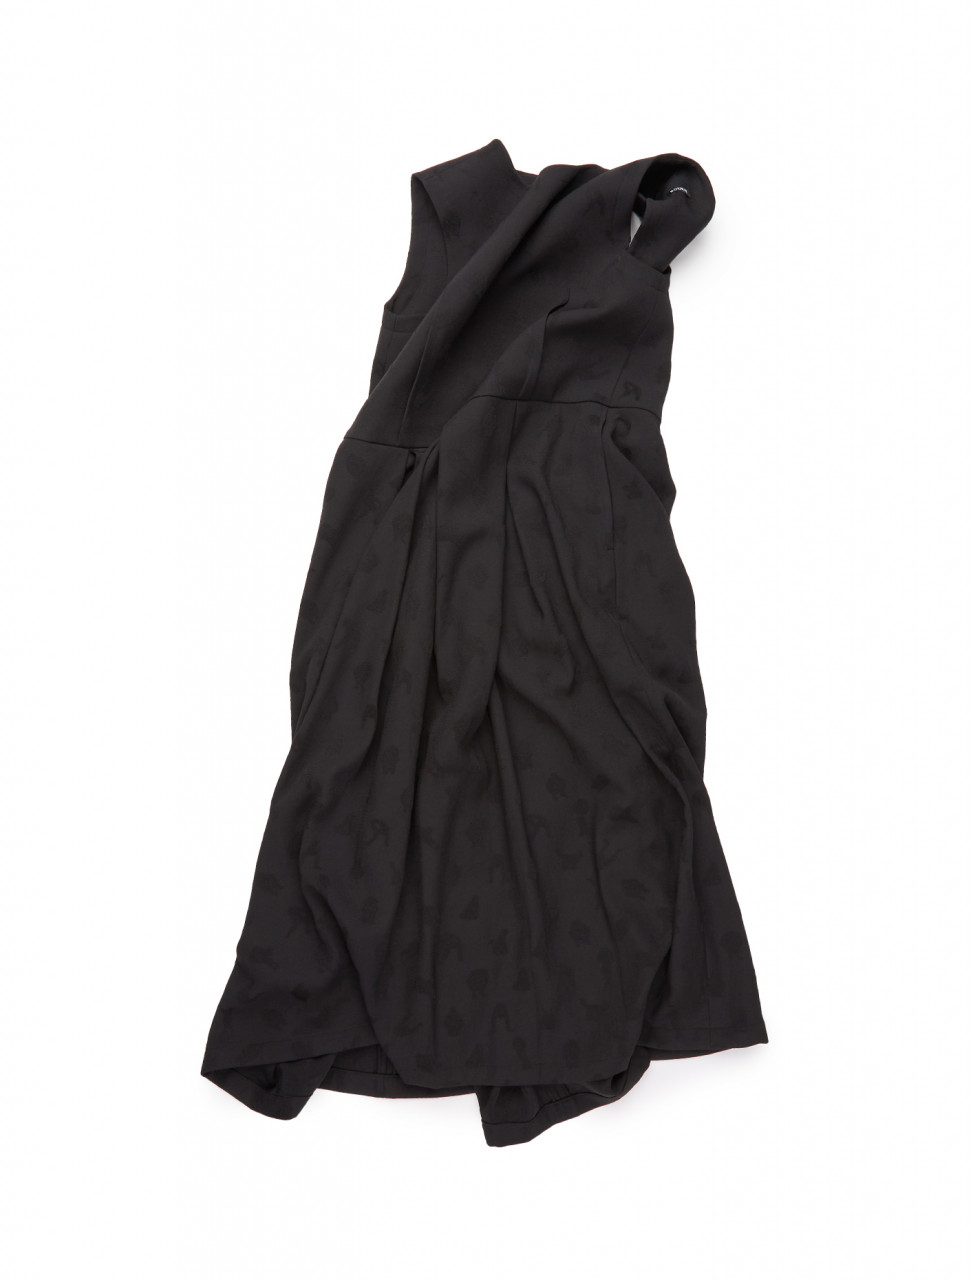 351-BC20FWDR01-BK BOURIE BACK STRAP DRESS